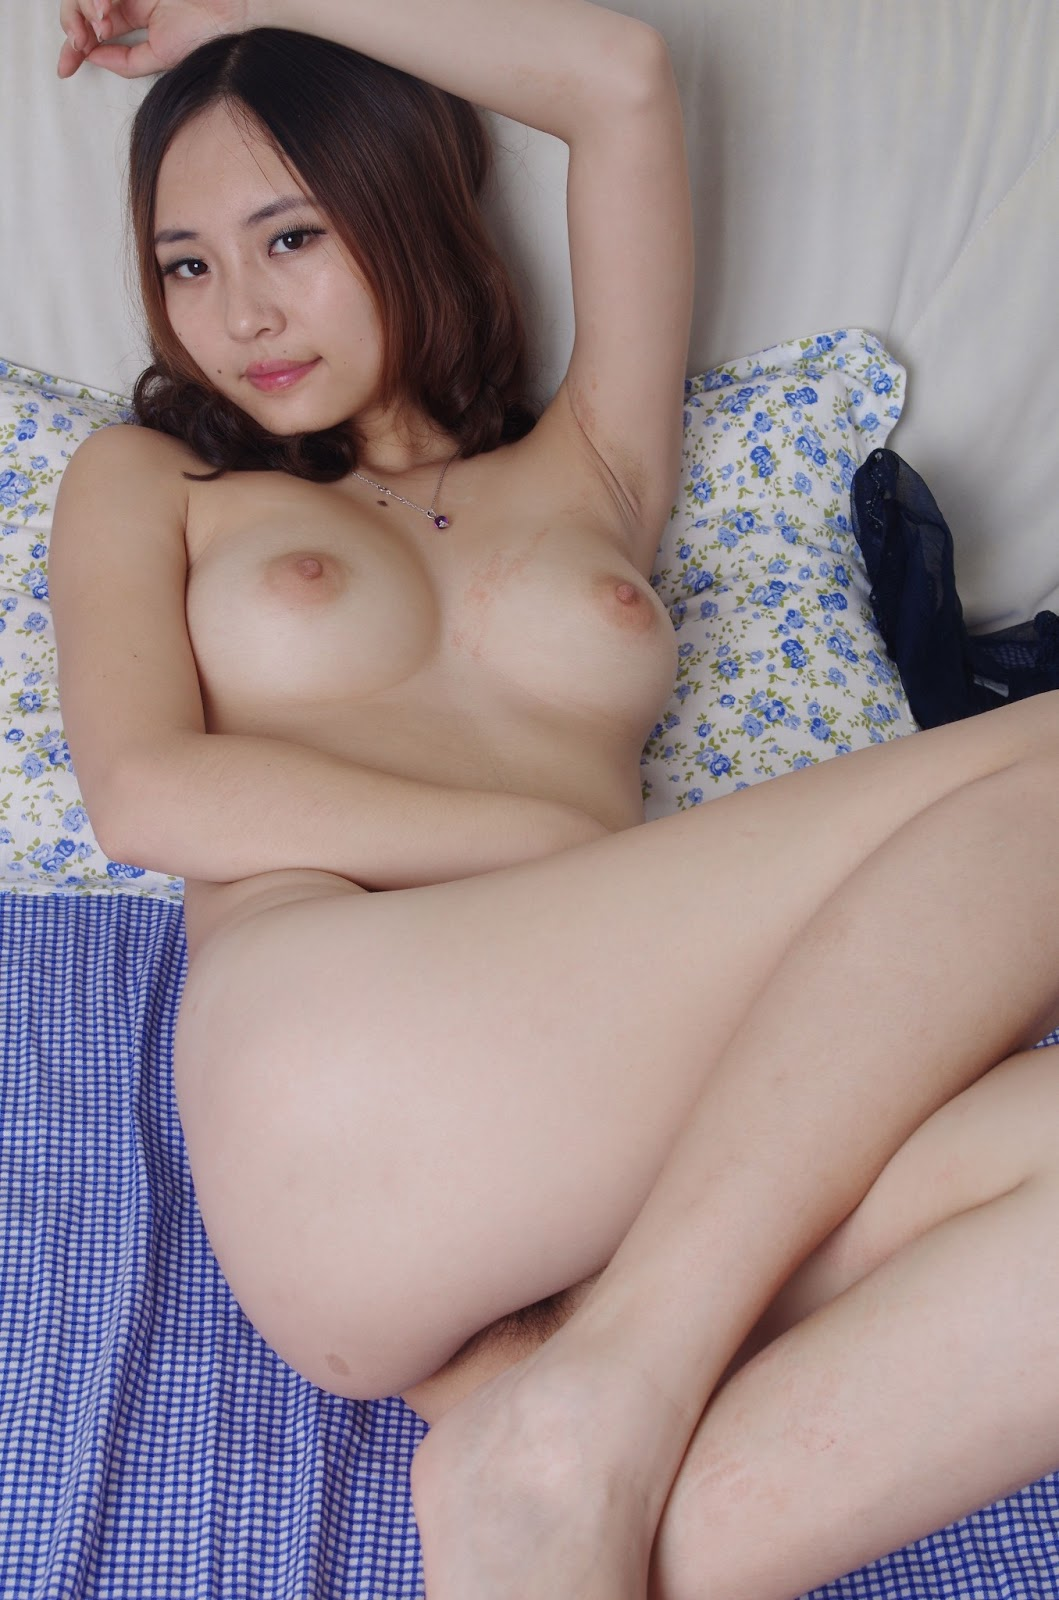 thailand pussy Super Sexy Thai Girl Hairy Pussy Photo